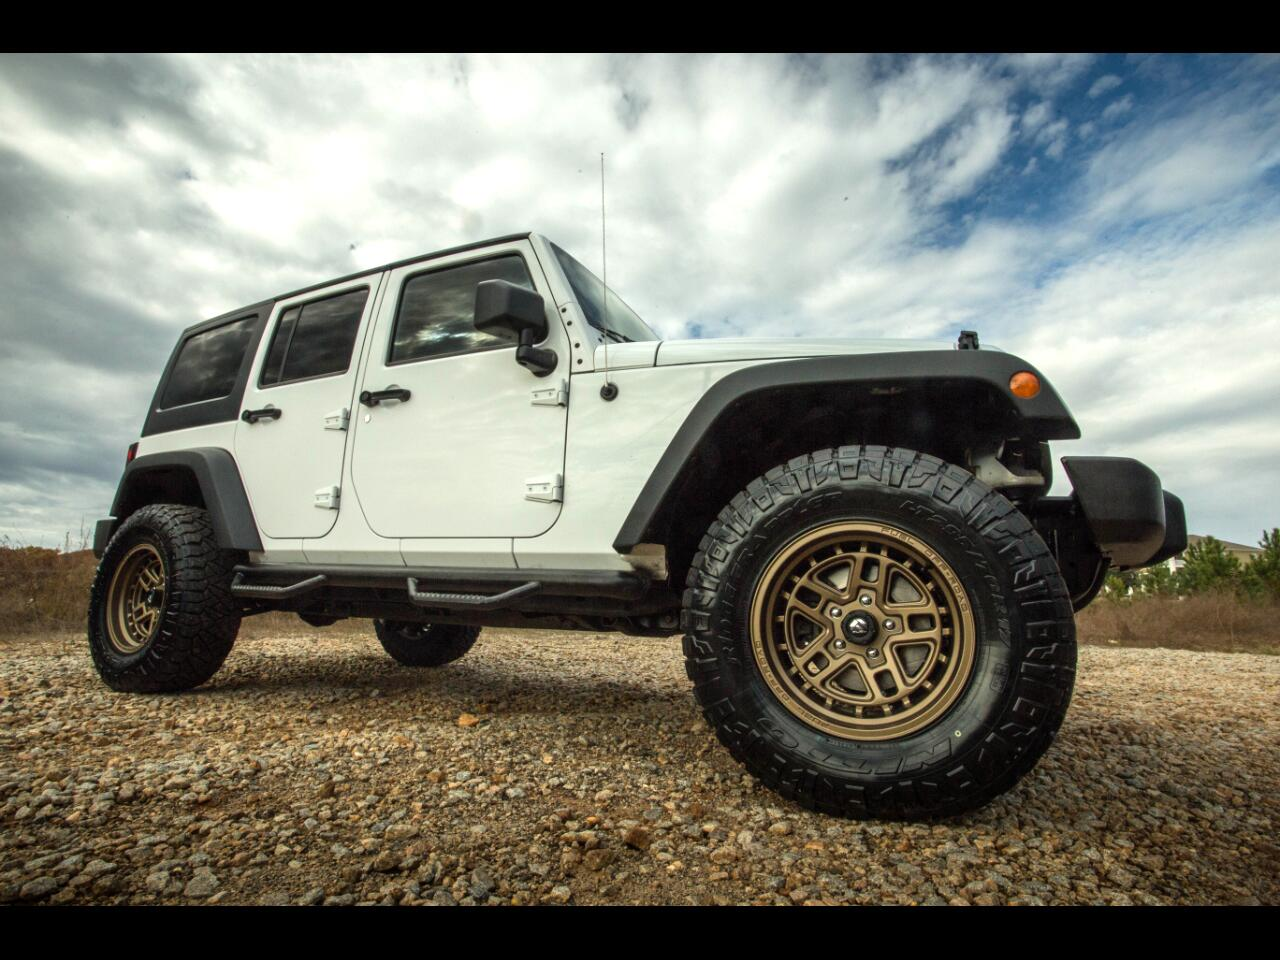 2013 Jeep Wrangler Unlimited 4wd Sport Unlimited Lifted Wheels Tires Hard Top